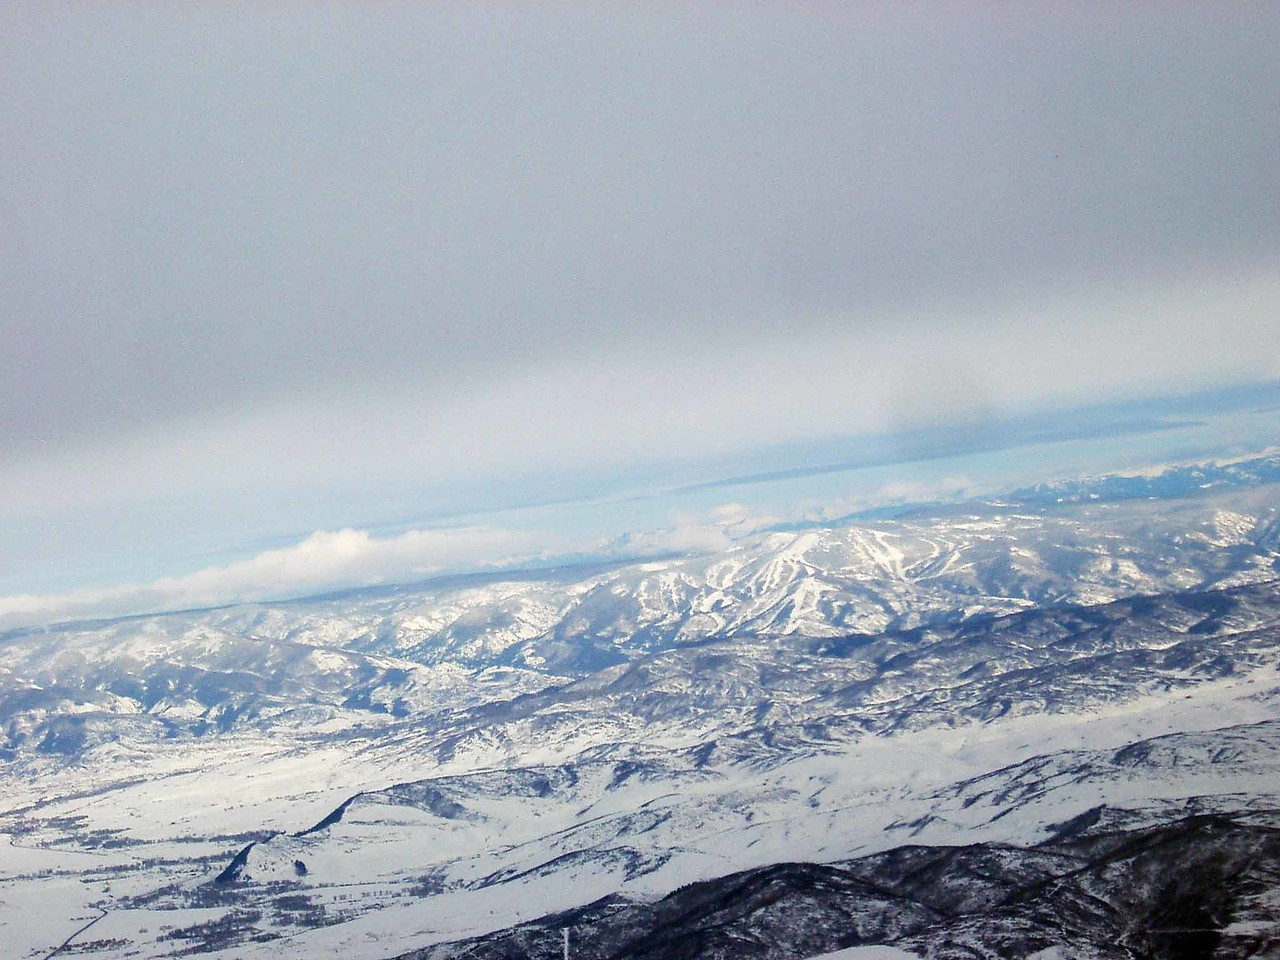 321 Steamboat Ski Area from Air